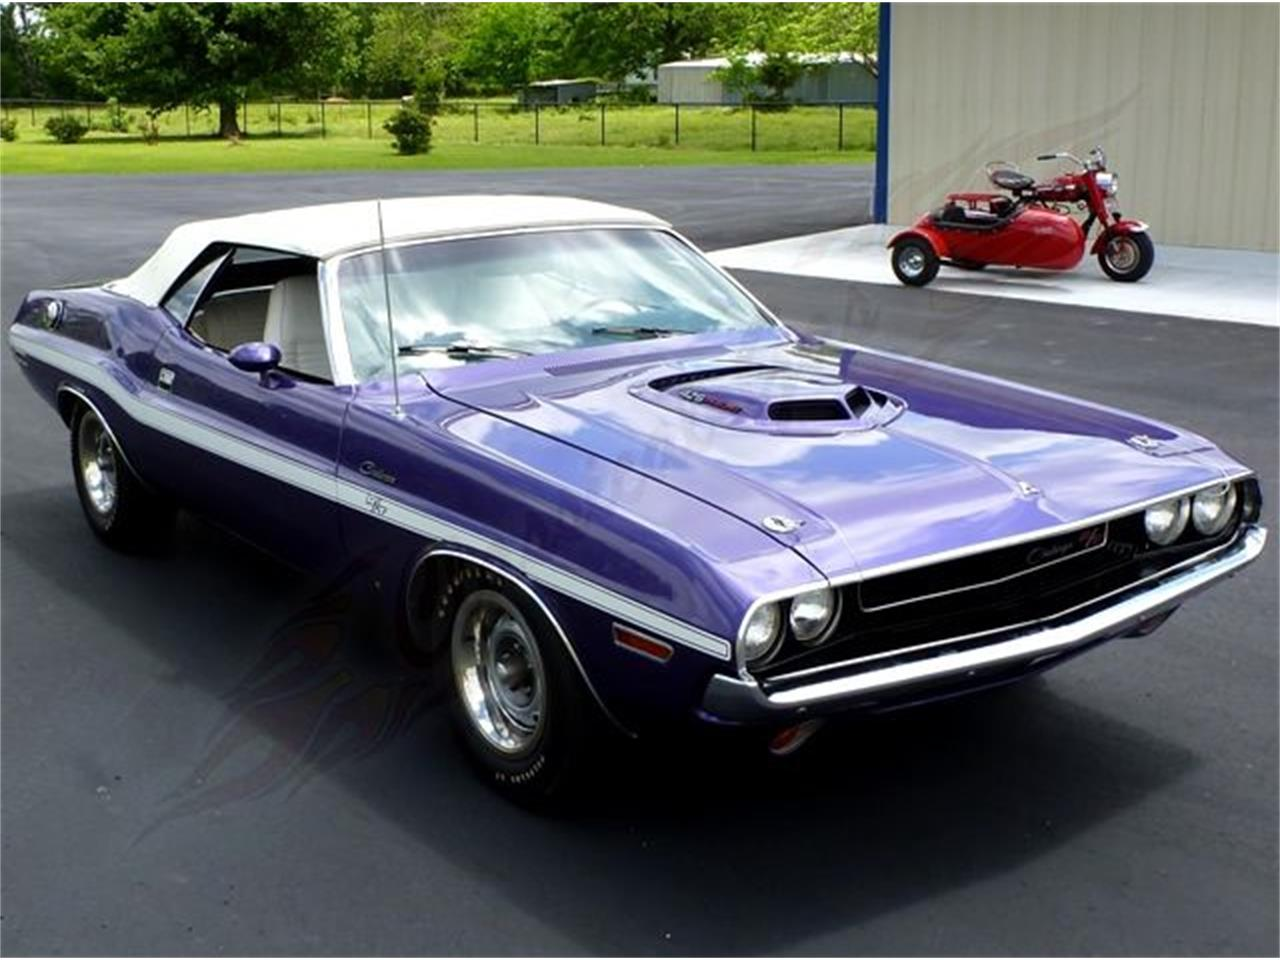 Large Picture of Classic '70 Challenger R/T located in Texas - $189,500.00 - LTOP